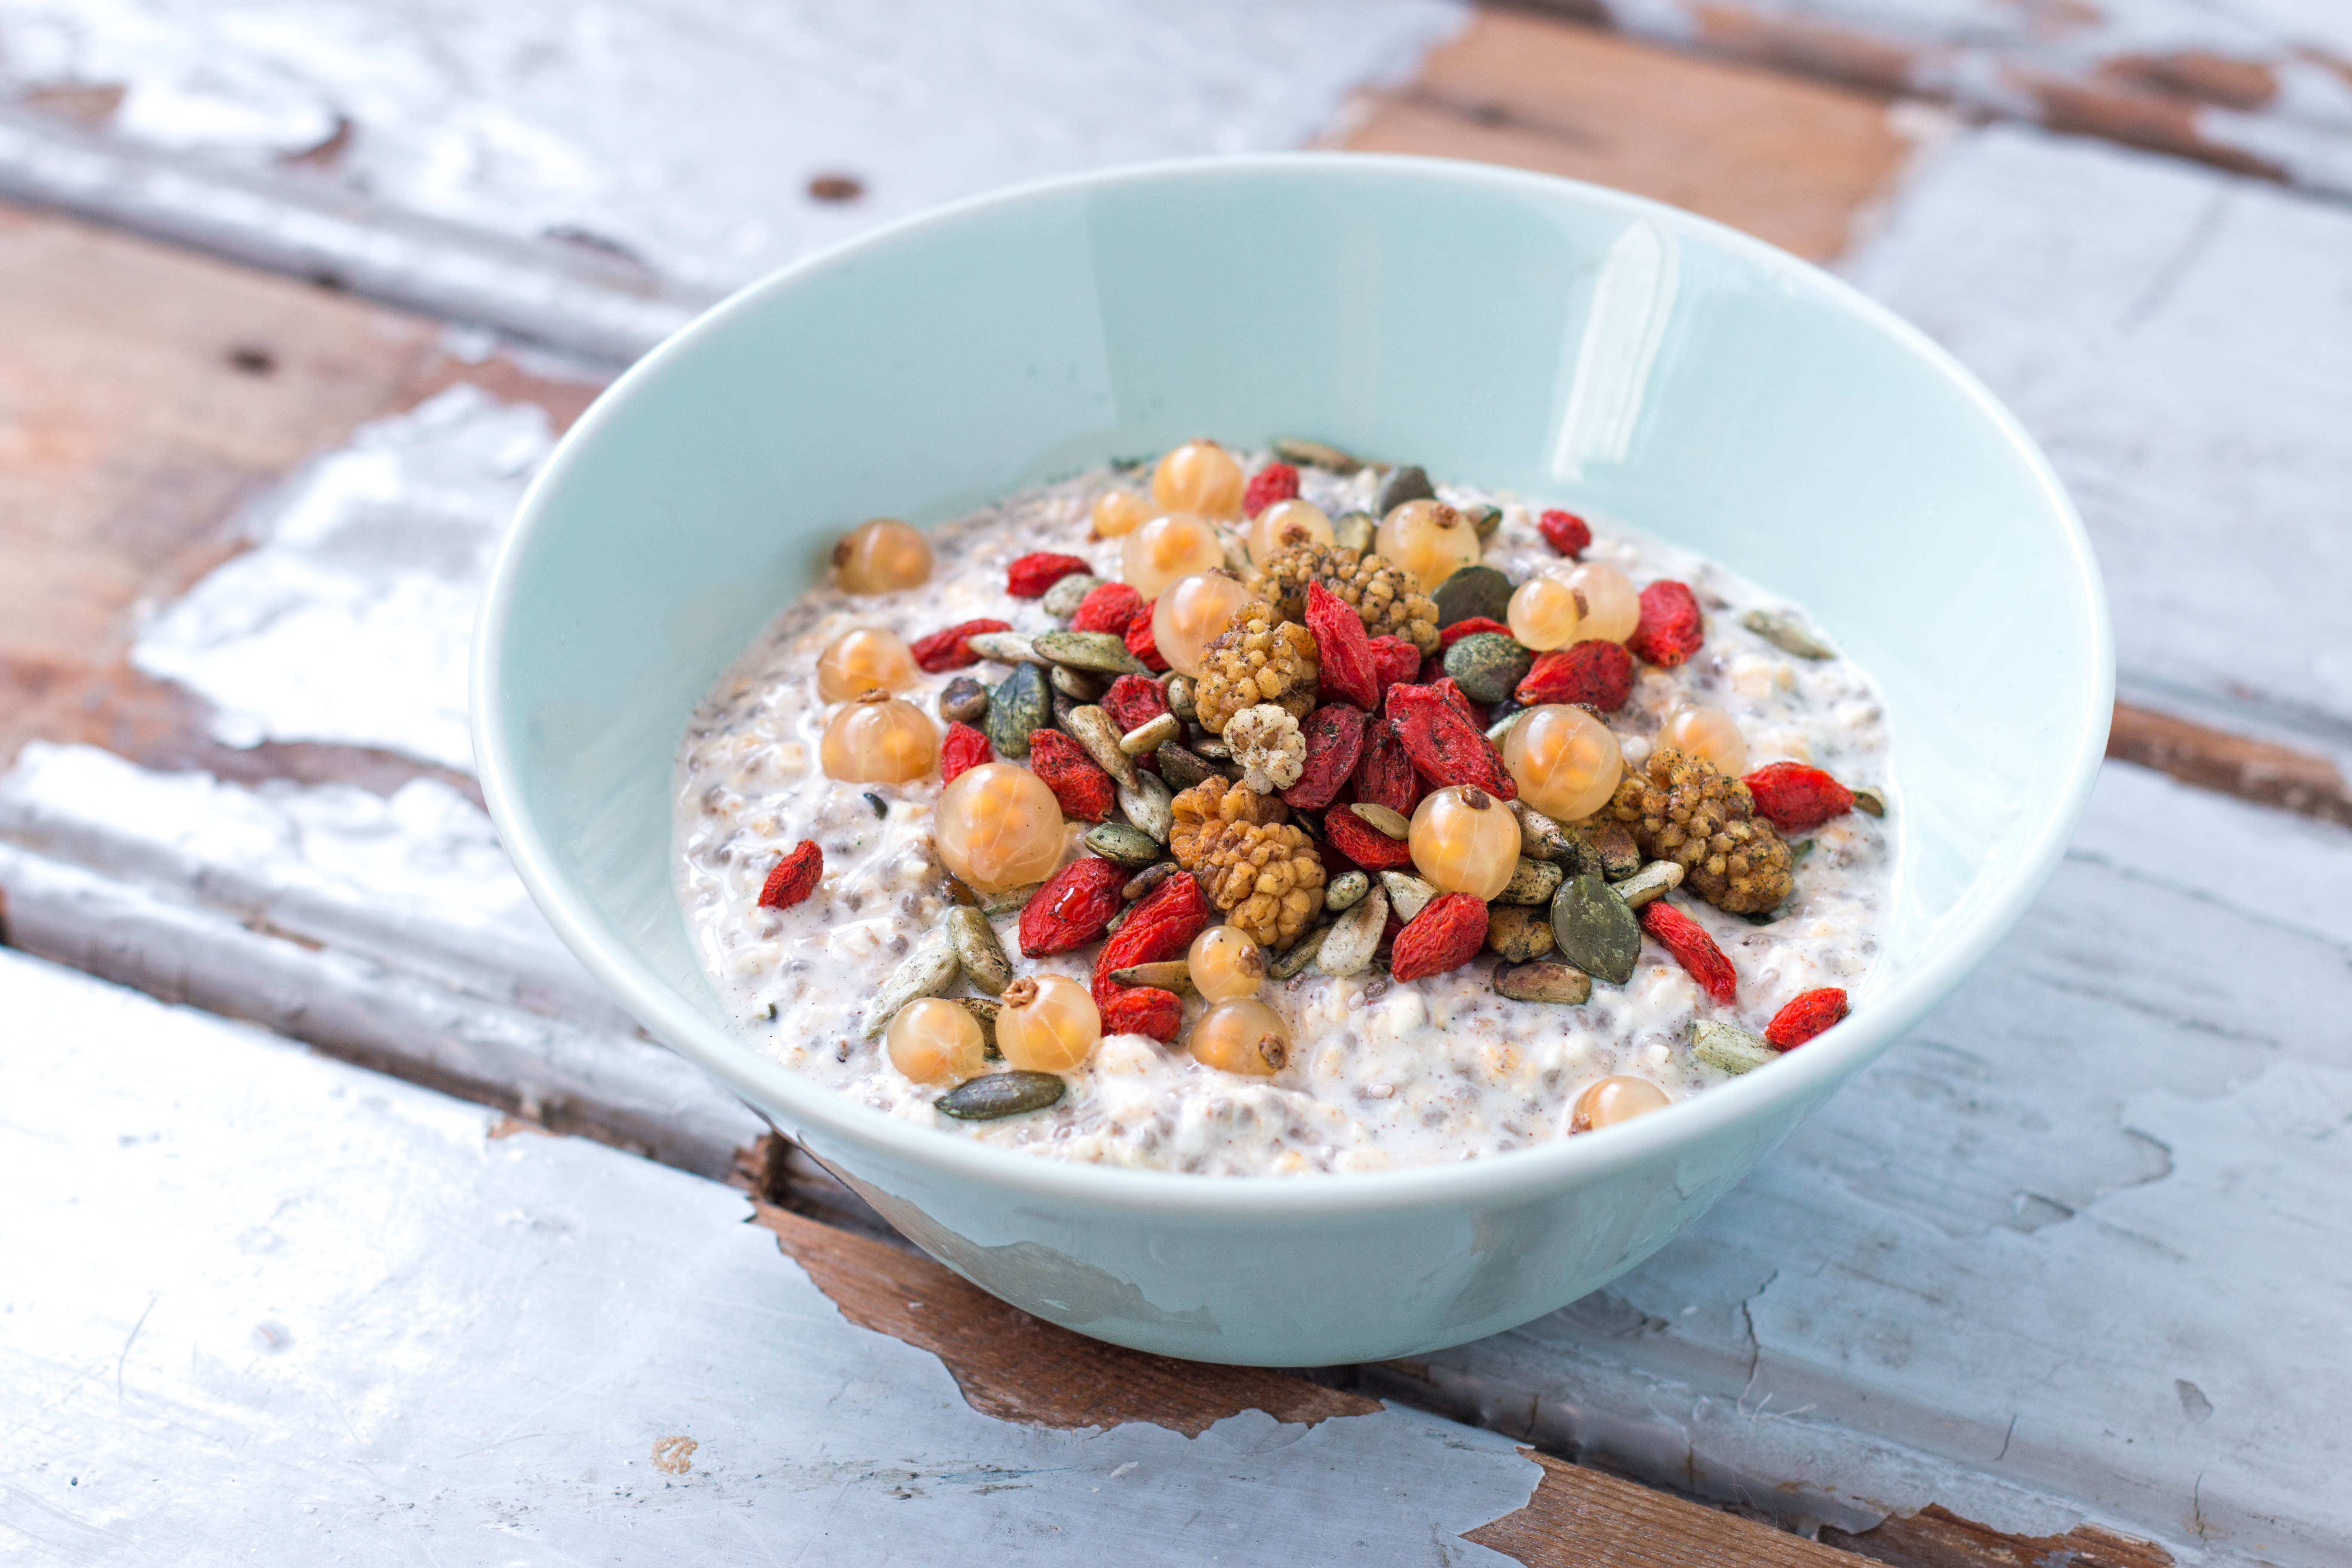 Vegan Chia Oatmeal Pudding